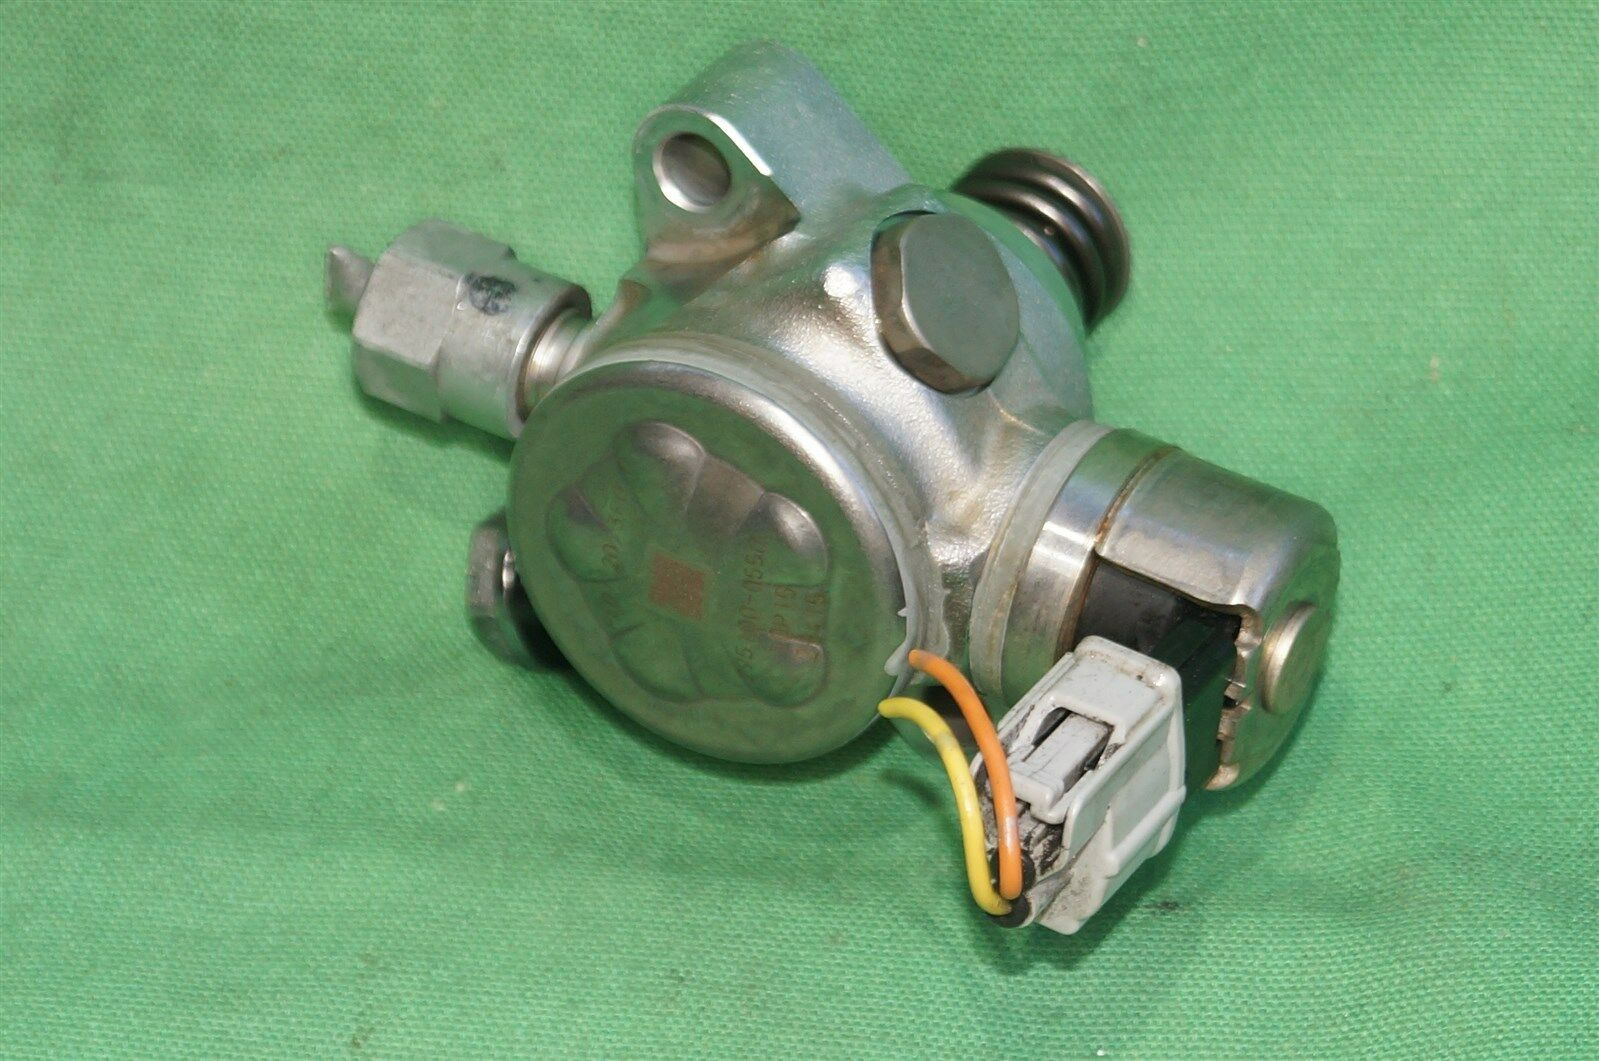 12-14 Mazda6 Mazda3 Mazda 3 6 Cx-5 2.0L Mechanical High Pressure Fuel Pump HPFP